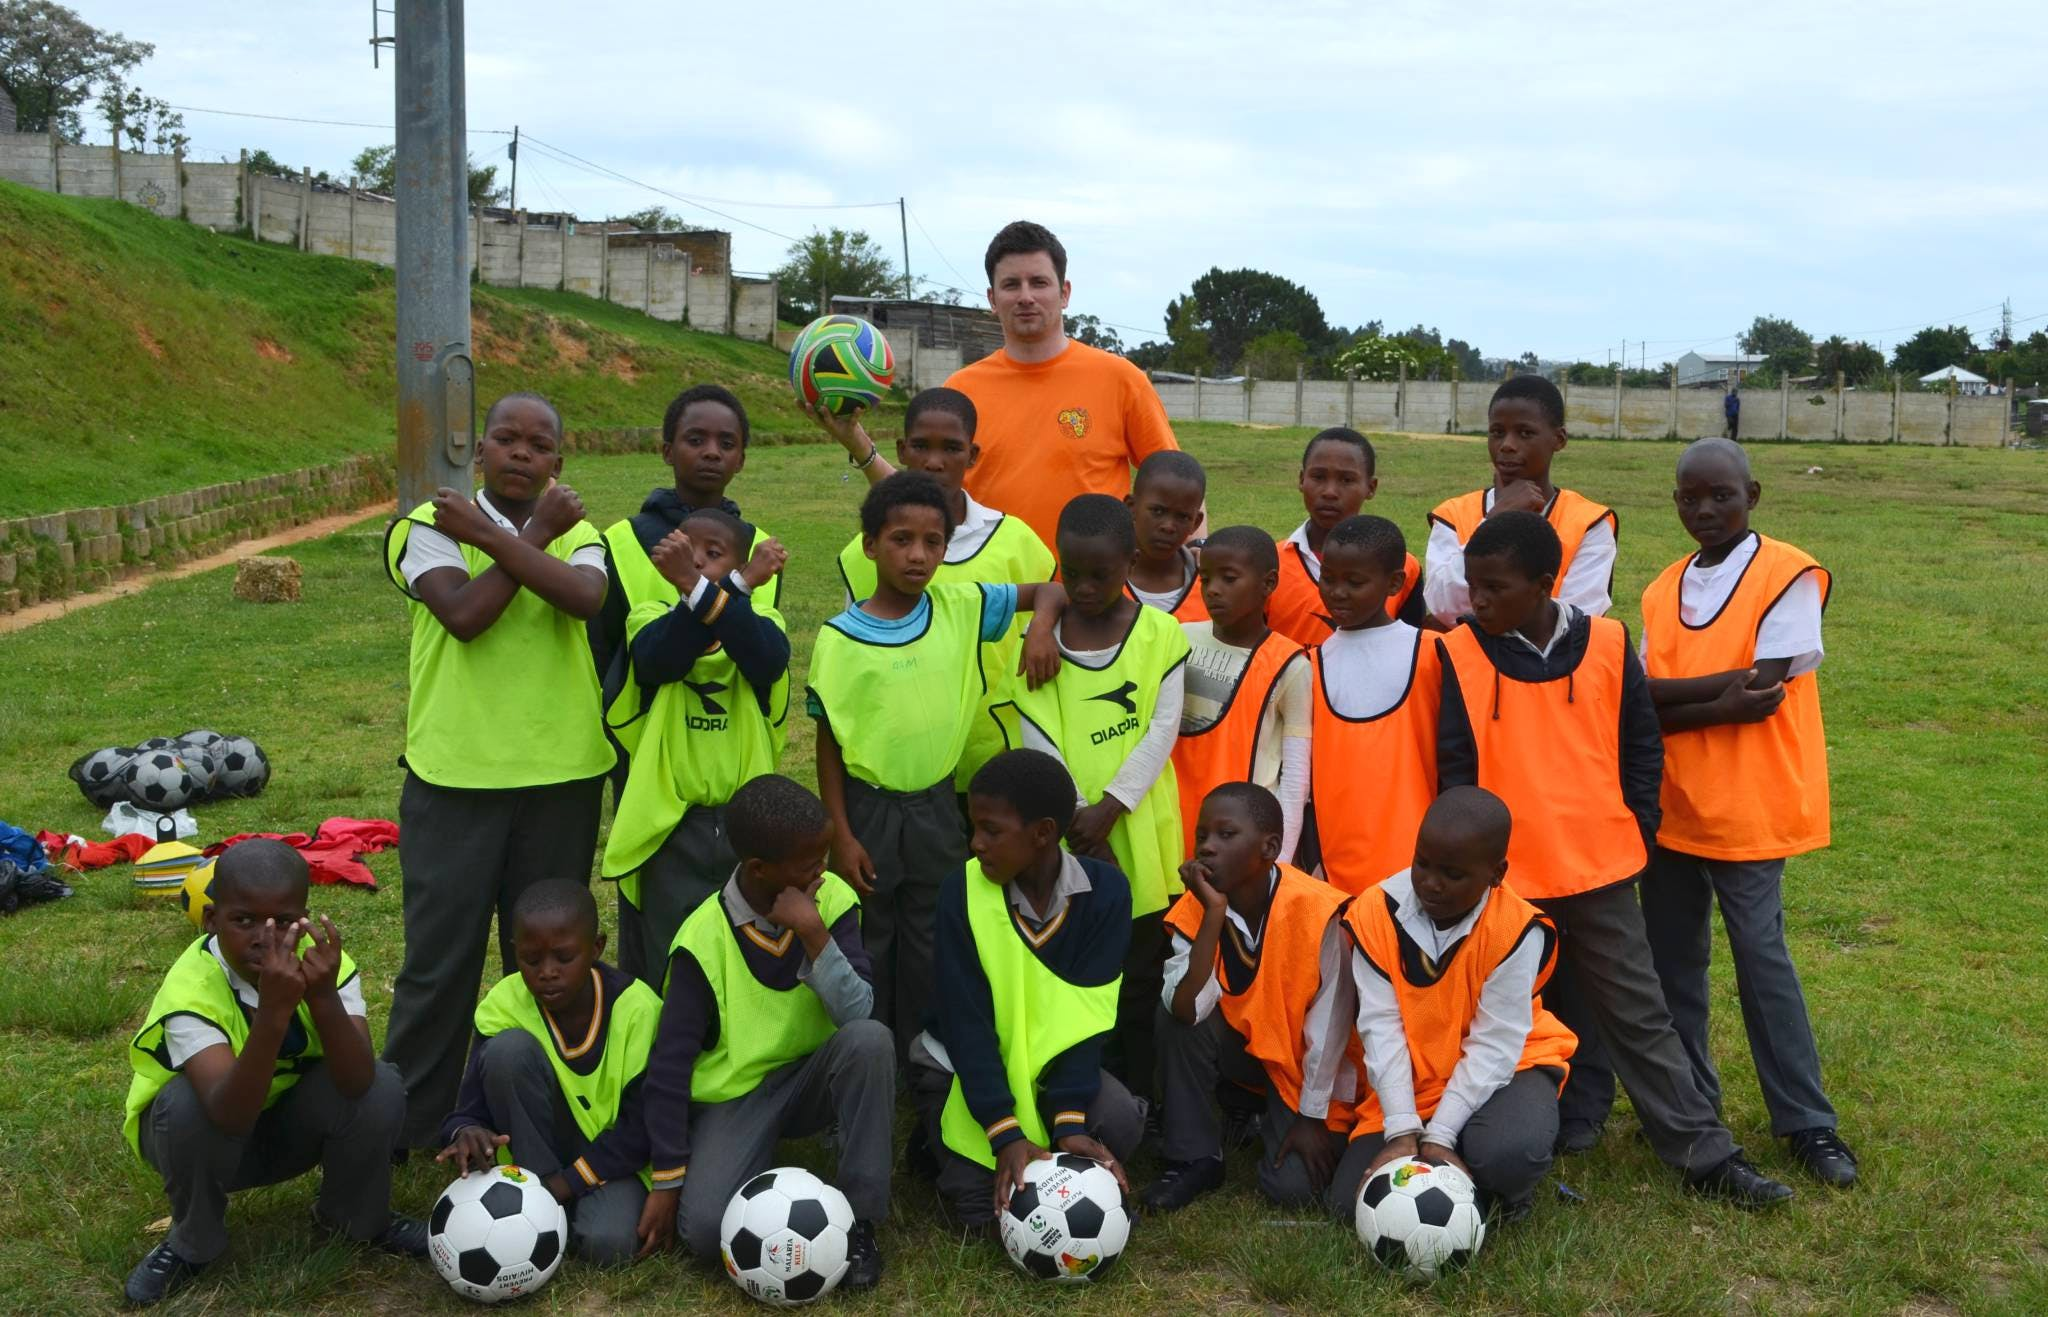 Sports Coaching & Community Outreach